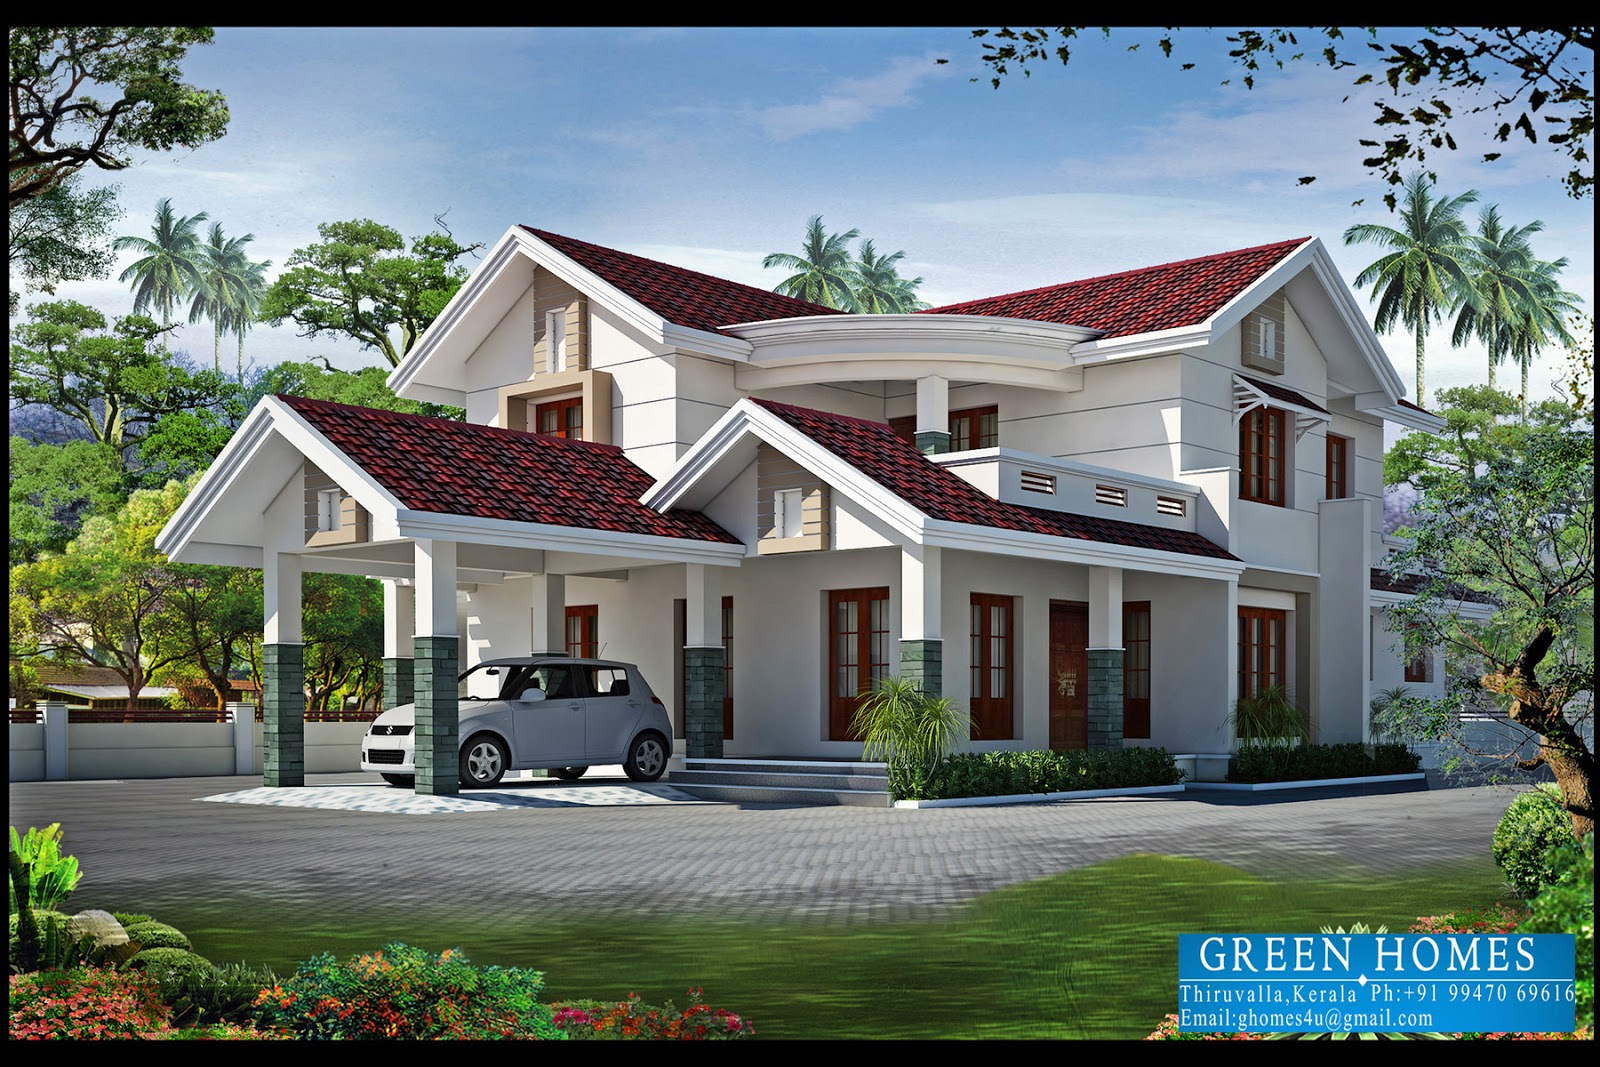 Green homes 4bhk kerala home design 2550 for Home designs kerala architects